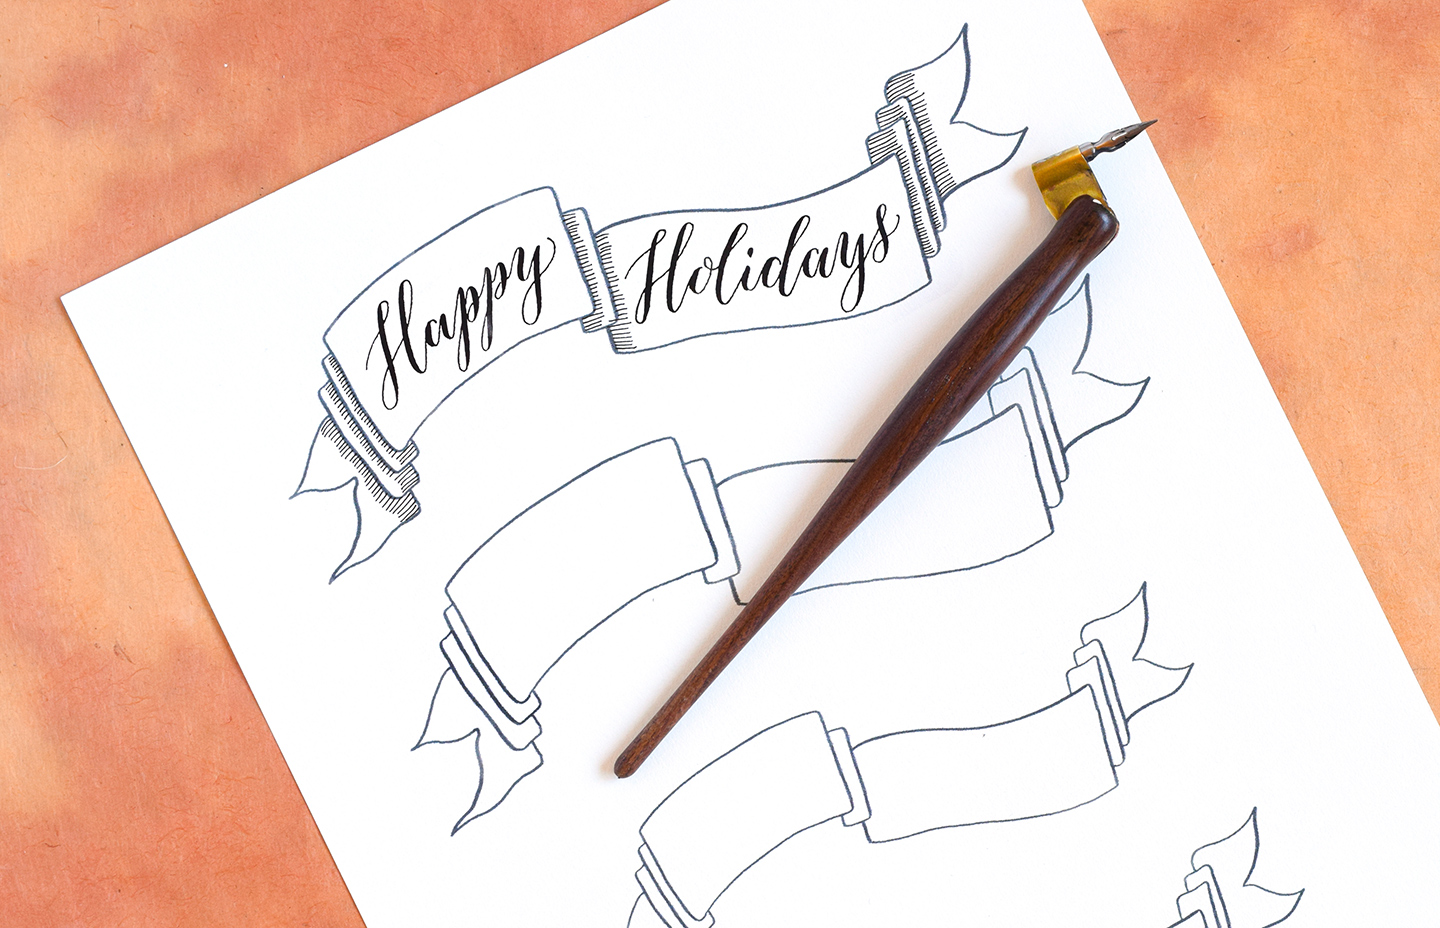 DIY Holiday Card + Artistic Envelope Tutorial | The Postman's Knock